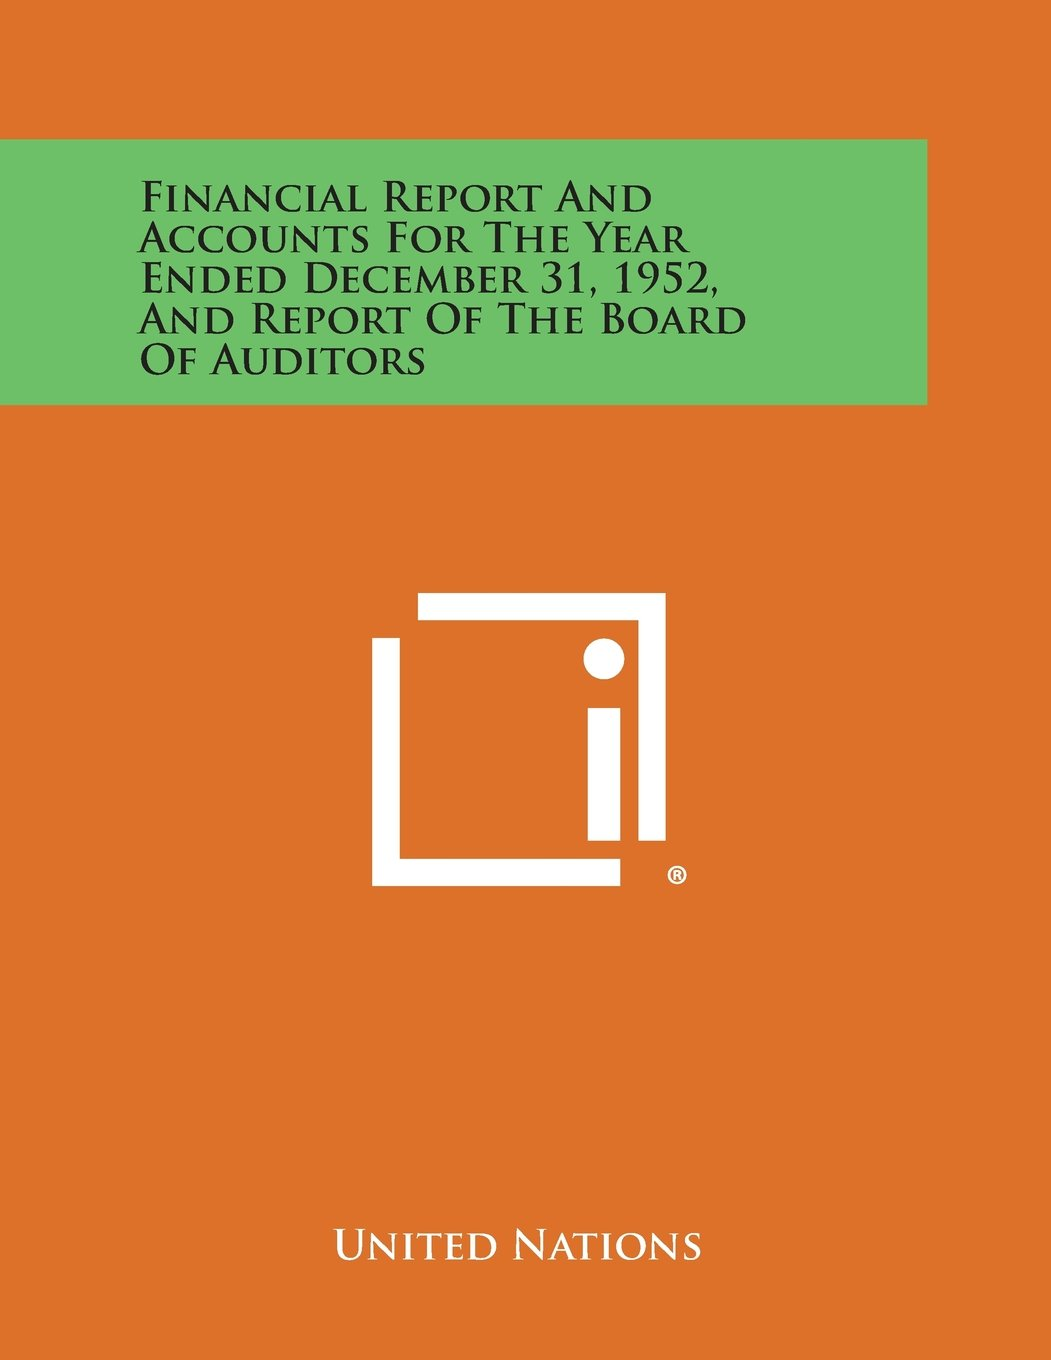 Financial Report and Accounts for the Year Ended December 31, 1952, and Report of the Board of Auditors ebook